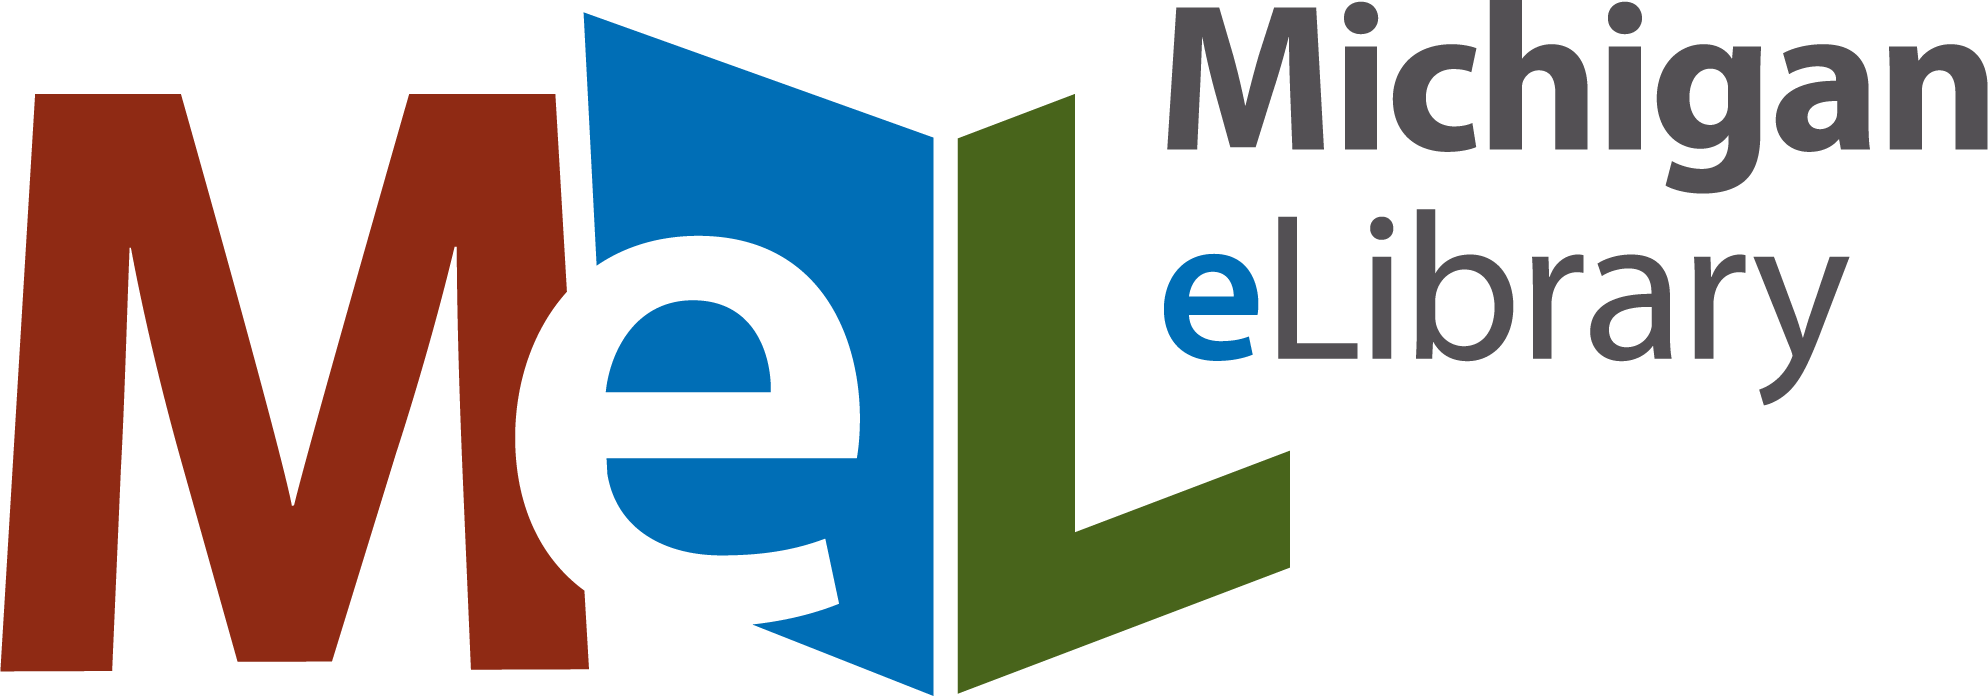 MeL-horizontal-logo-emphasis-RGB.png